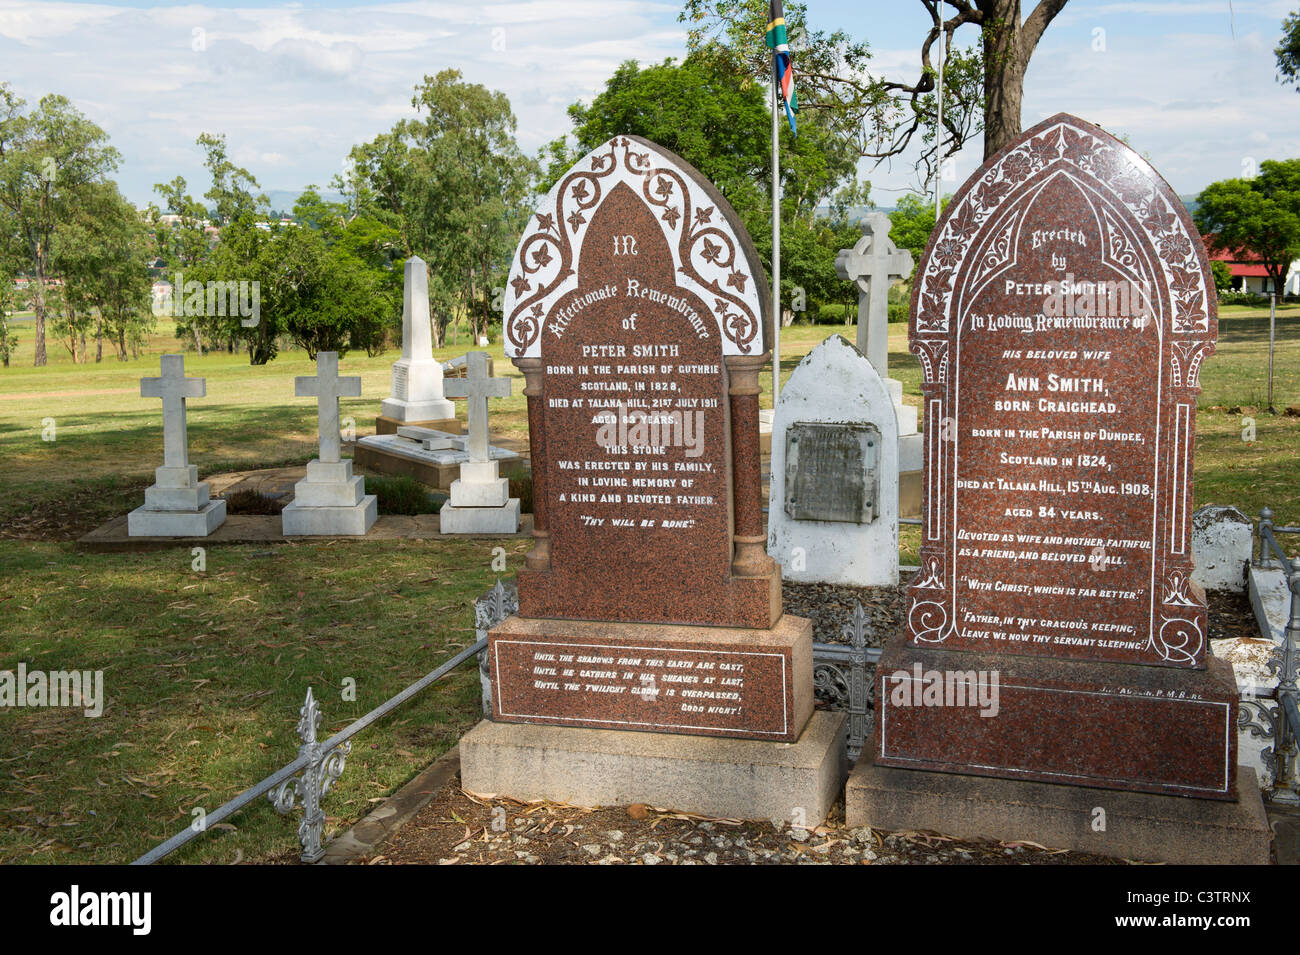 Cemetery, Talana Museum, Dundee, South Africa - Stock Image